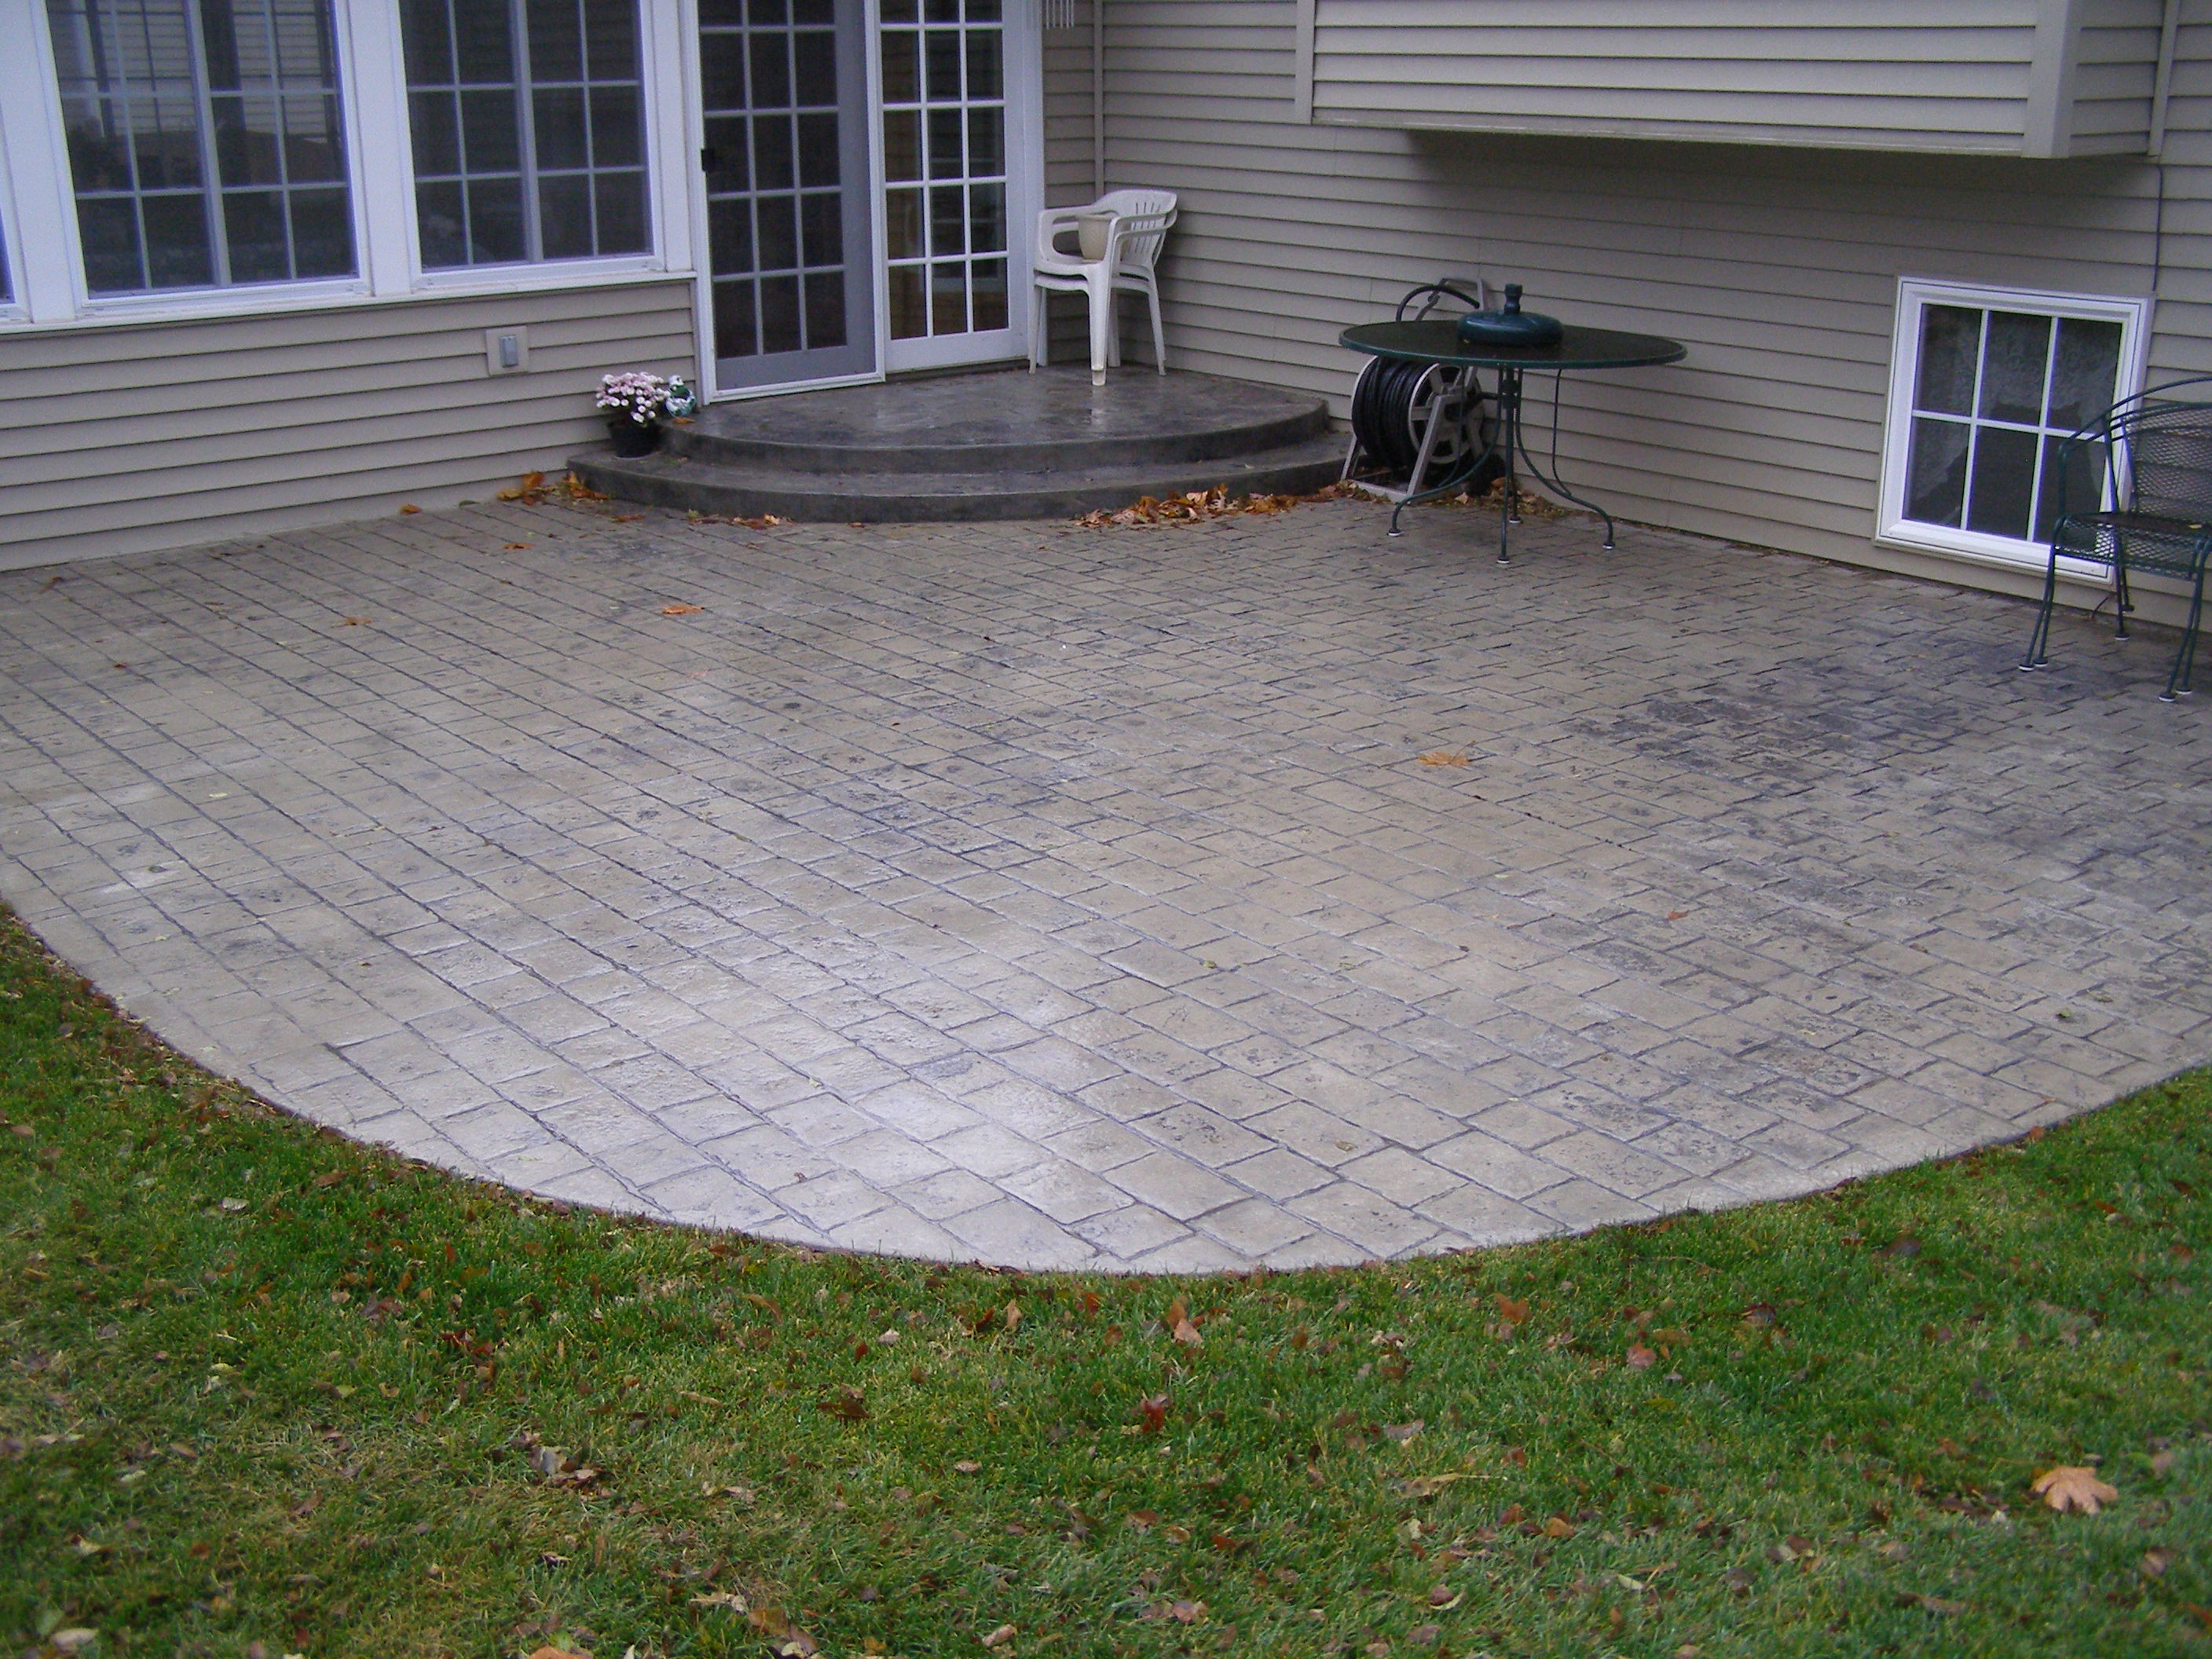 Our Rockford design staff specialize in stamped concrete projects like this patio